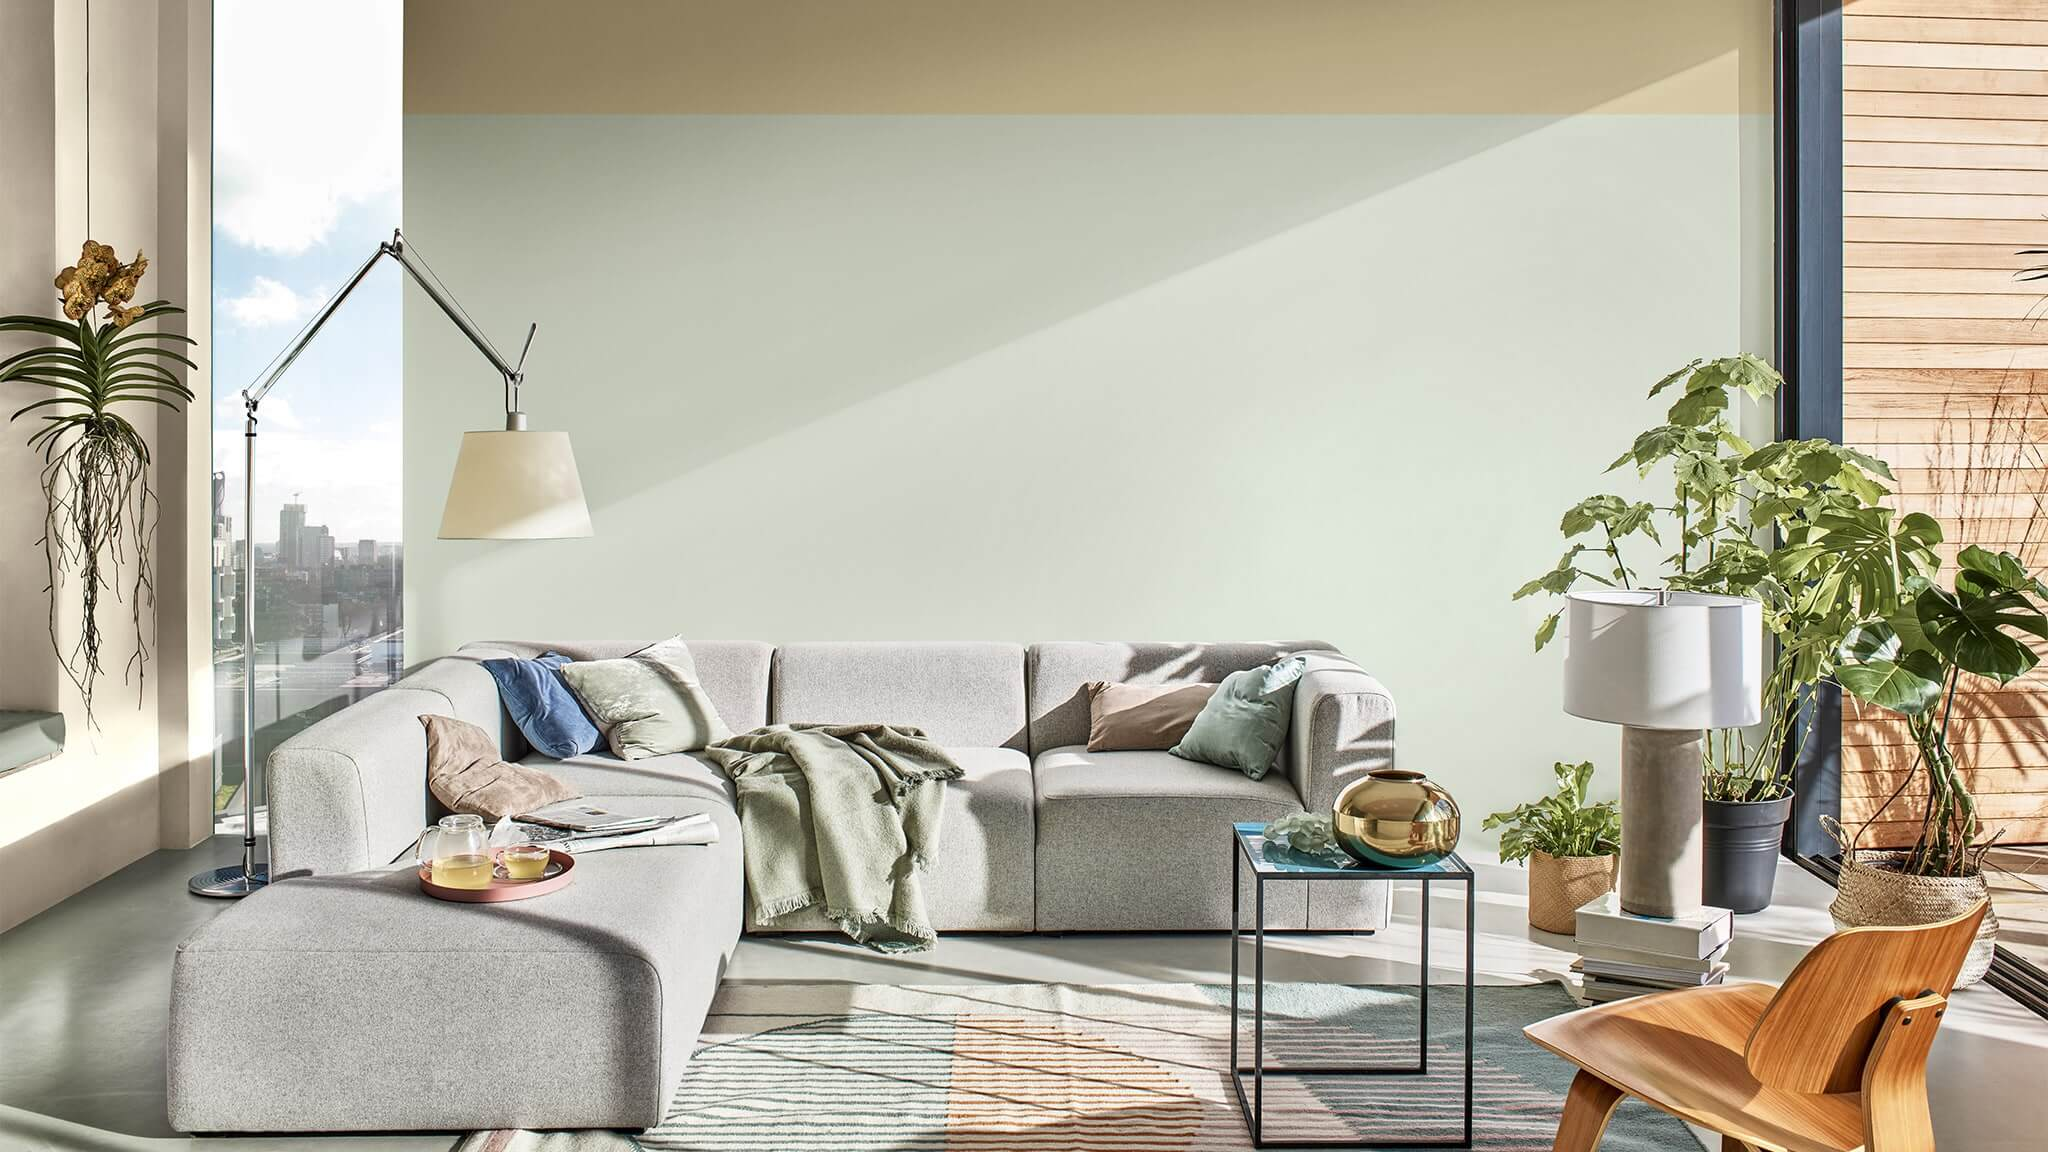 Dulux Colour Of The Year 2020 Tranquil Dawn Interior And Exterior Colour Paints Decorating Ideas Dulux